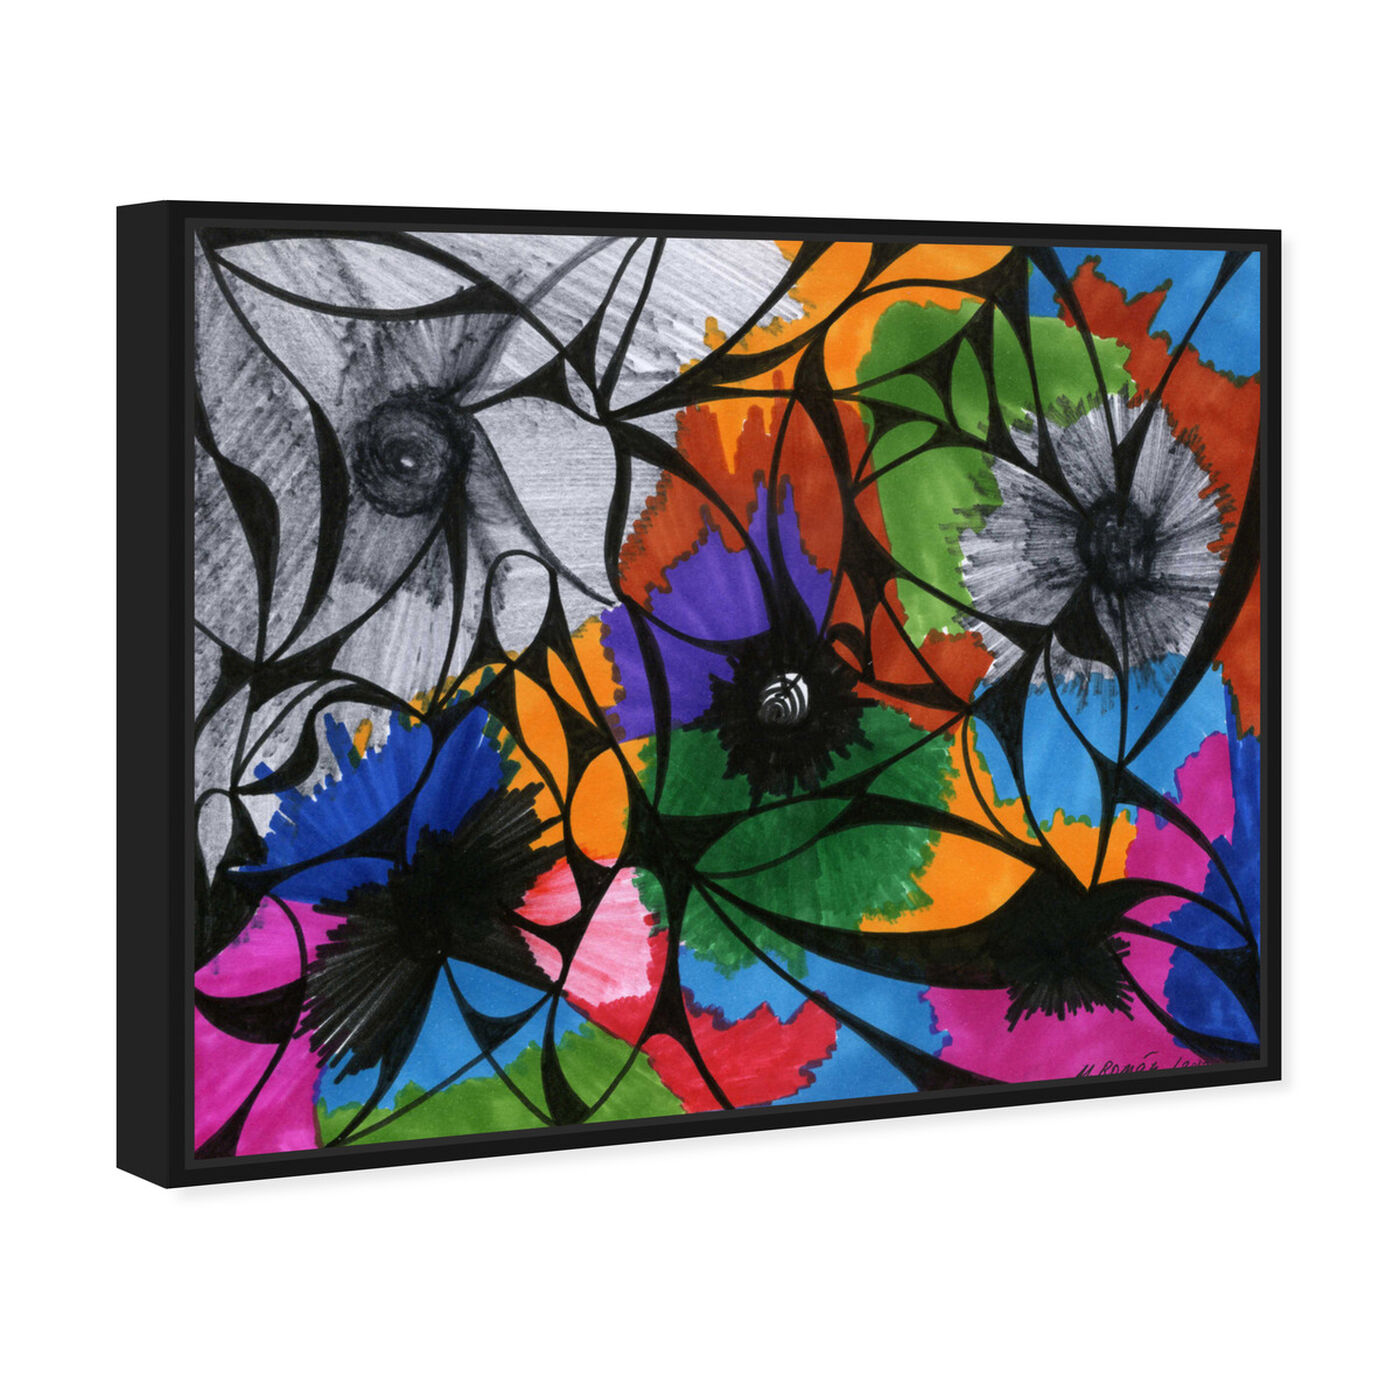 Angled view of Summer Bloom featuring abstract and flowers art.